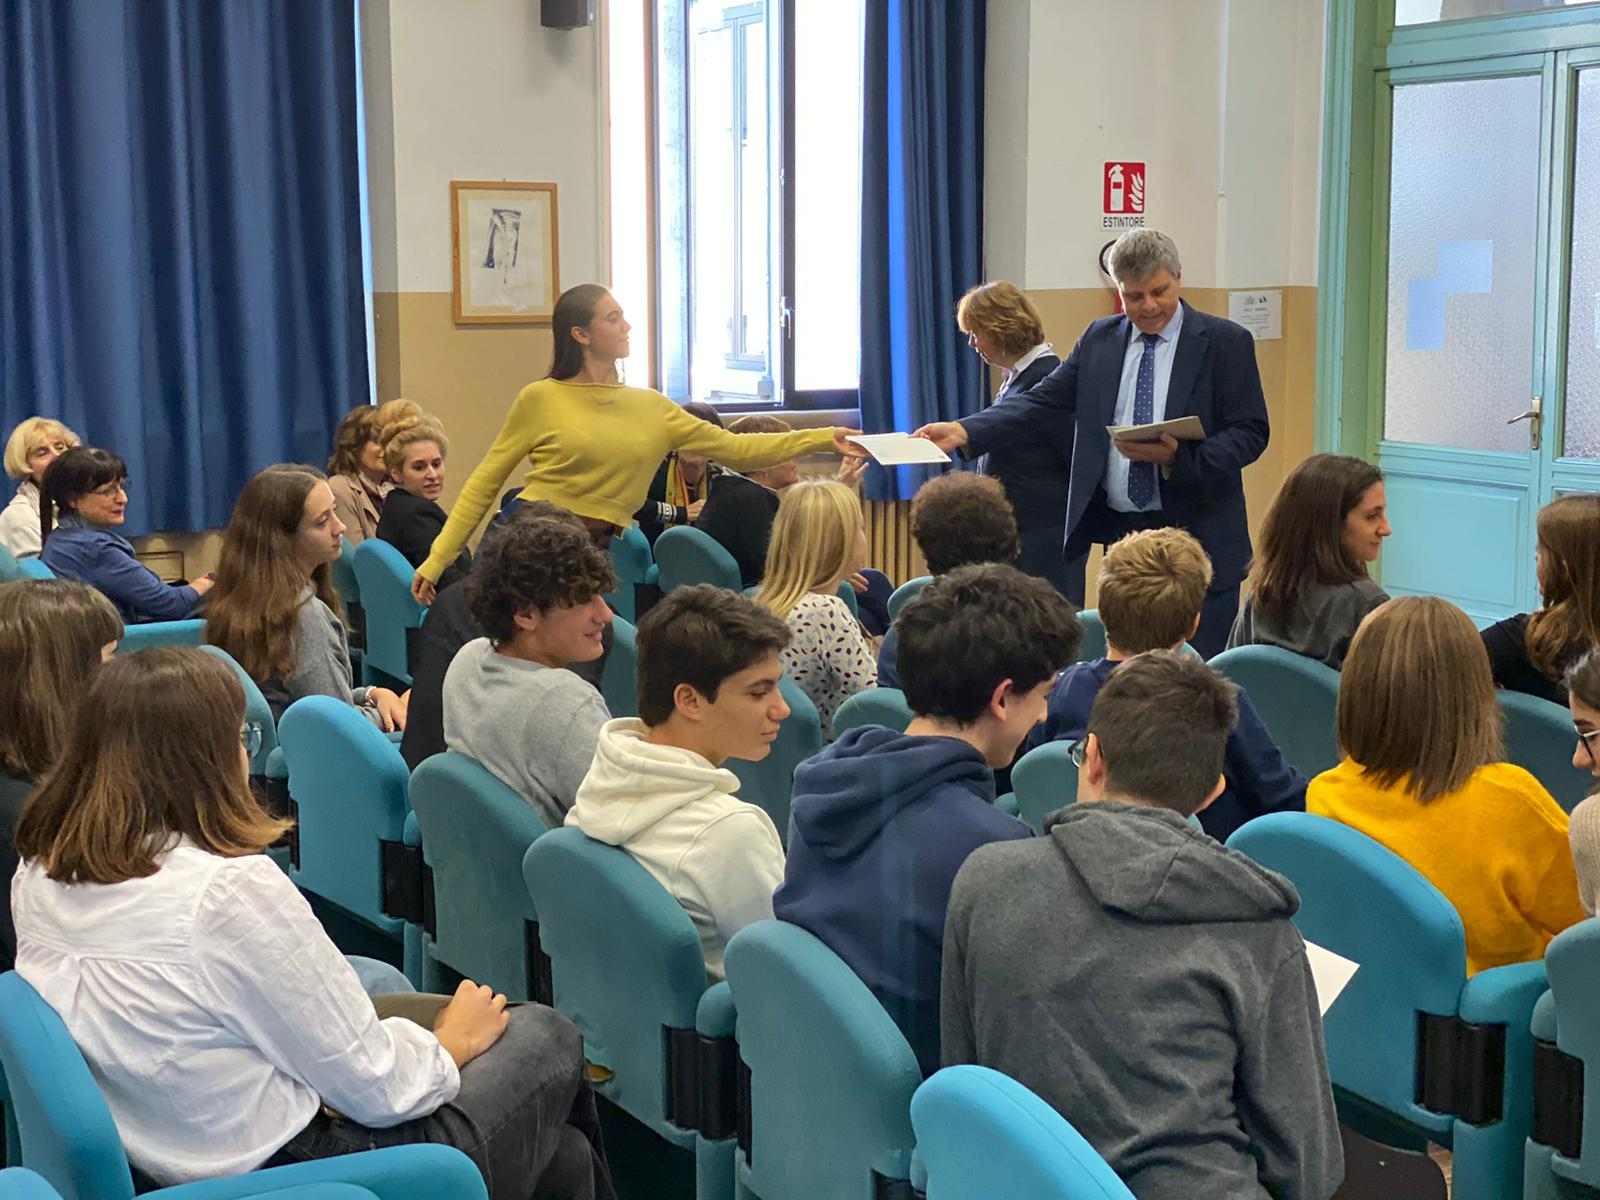 foto di allievi e preside del Berchet